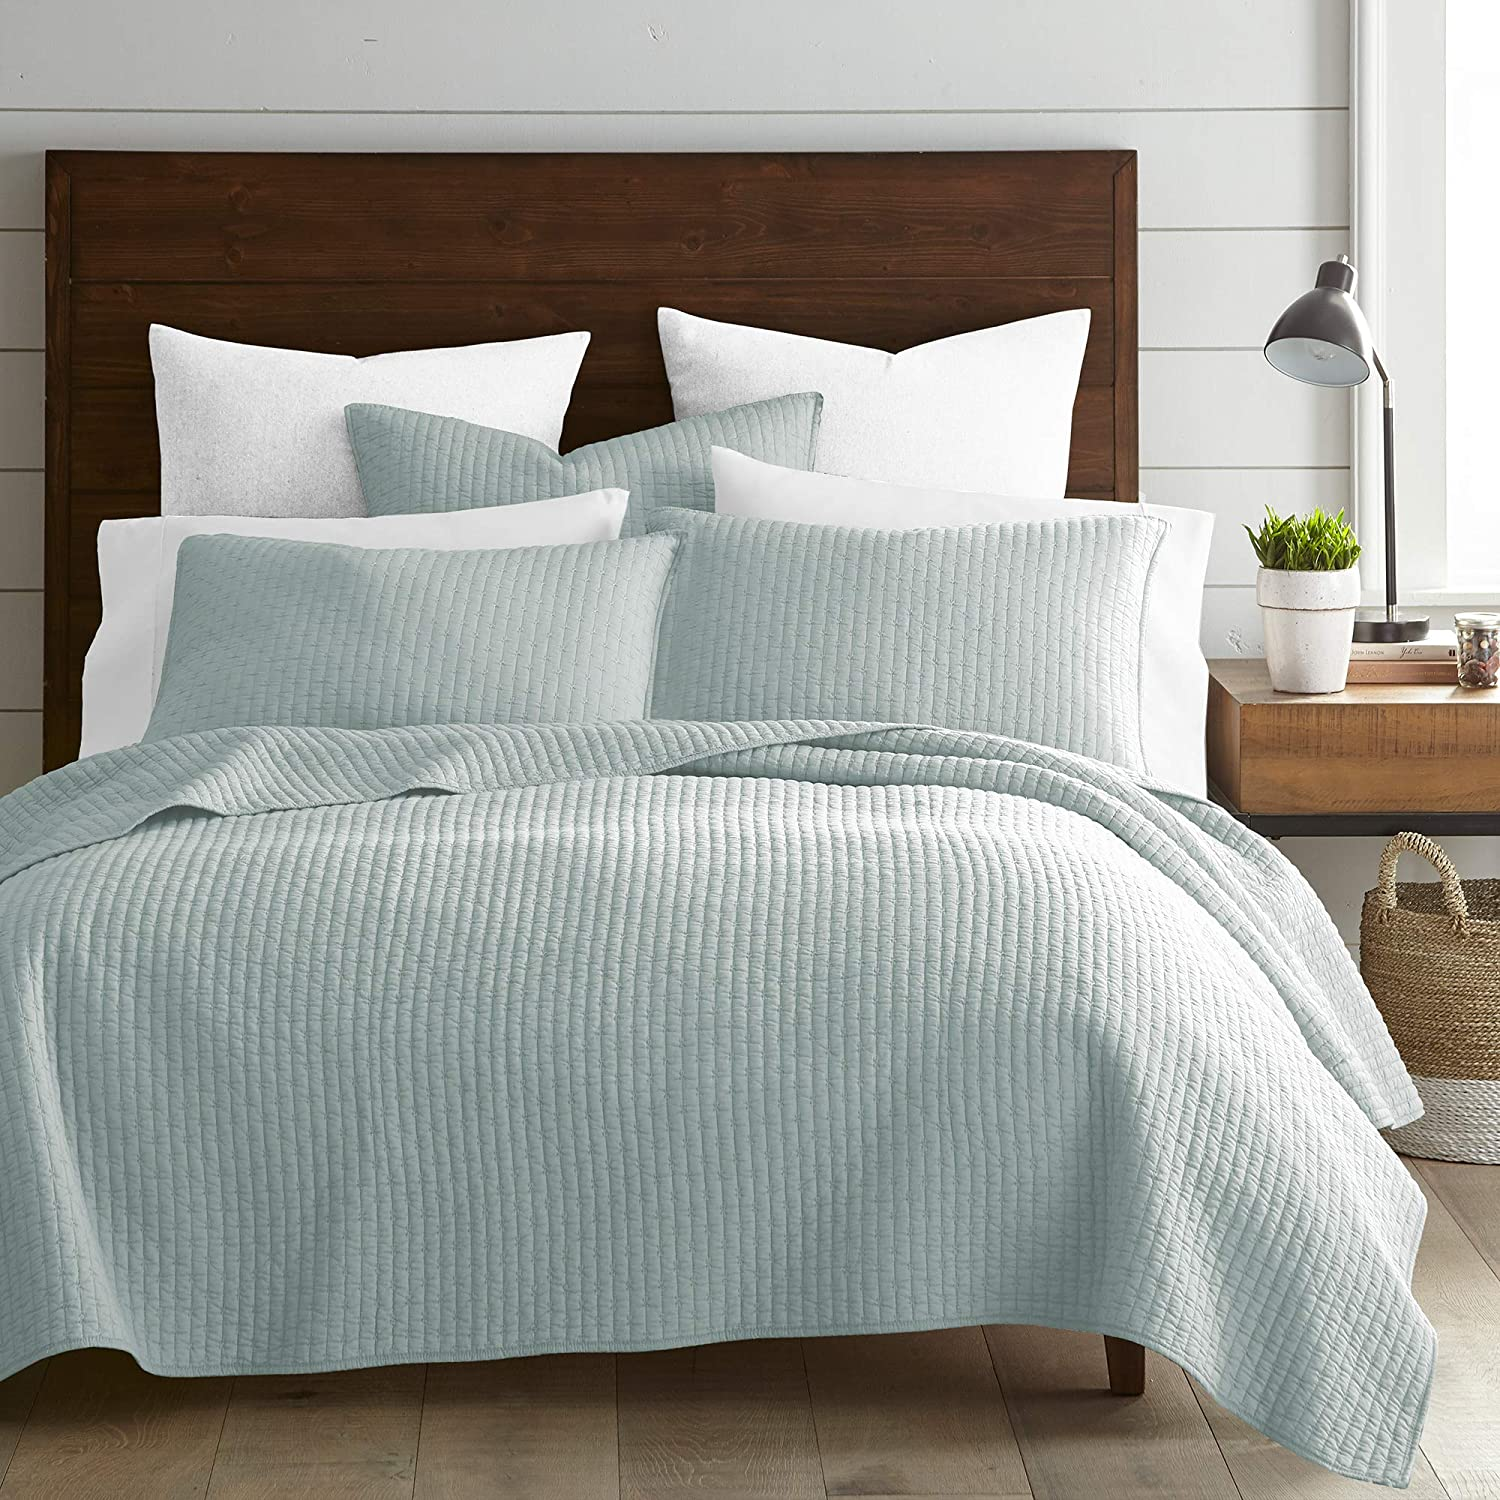 Amazon Com Levtex Home Cross Stitch Quilt Set 100 Cotton King 106x92in 2 Shams 36x20in Blue Green Kitchen Dining